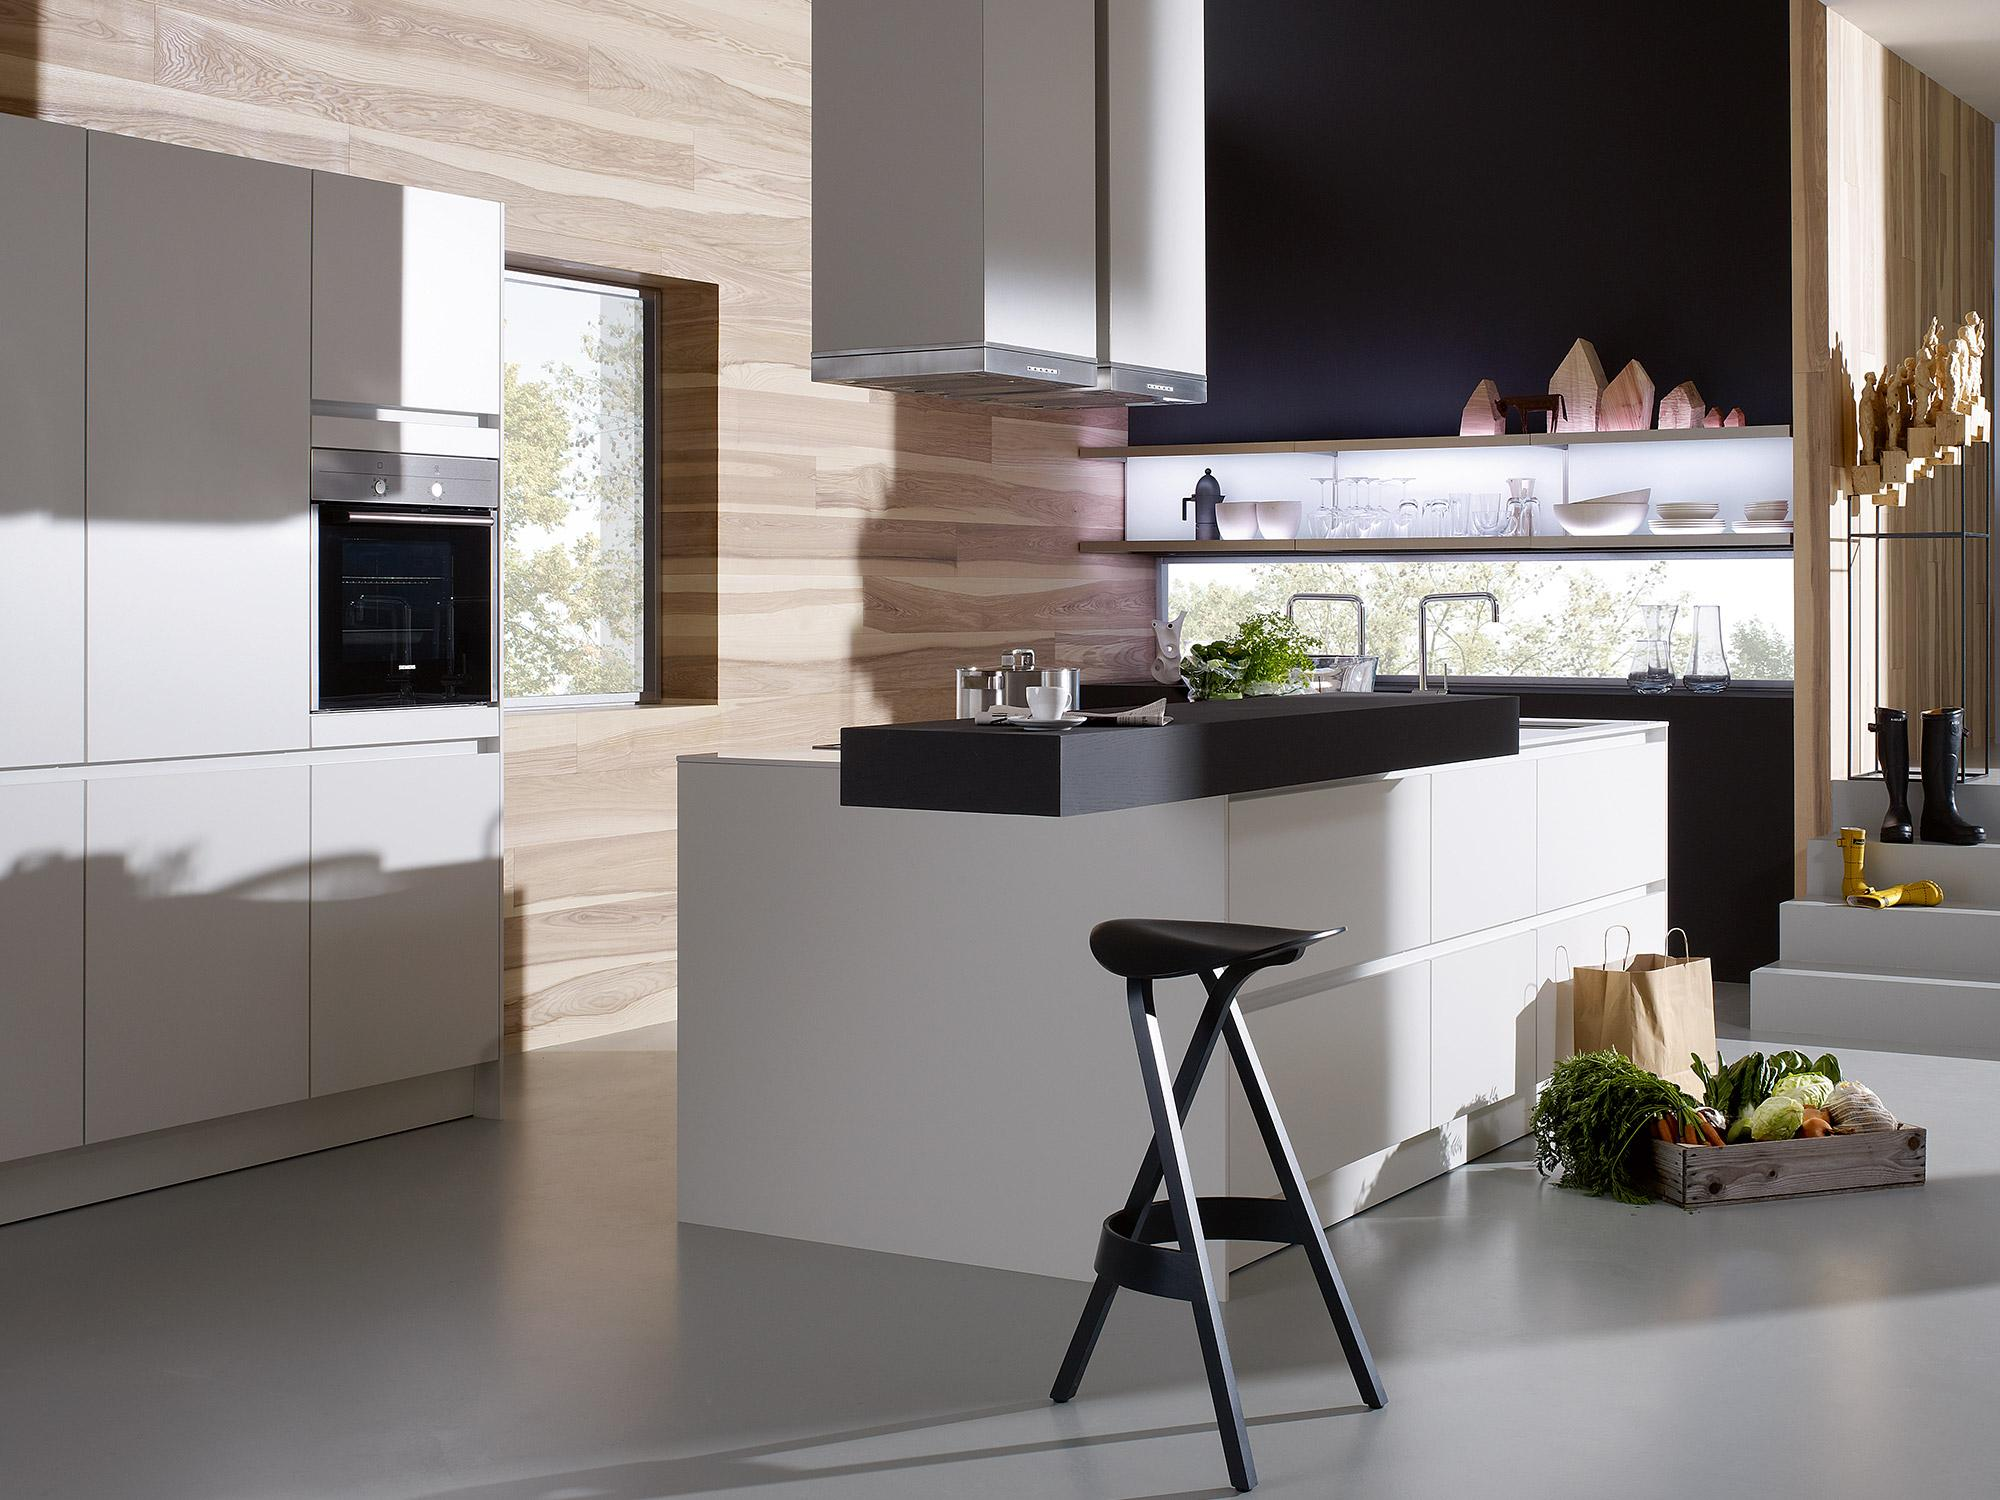 Siematic S2 #Küche #Hocker #Kücheninsel ©Siematic •